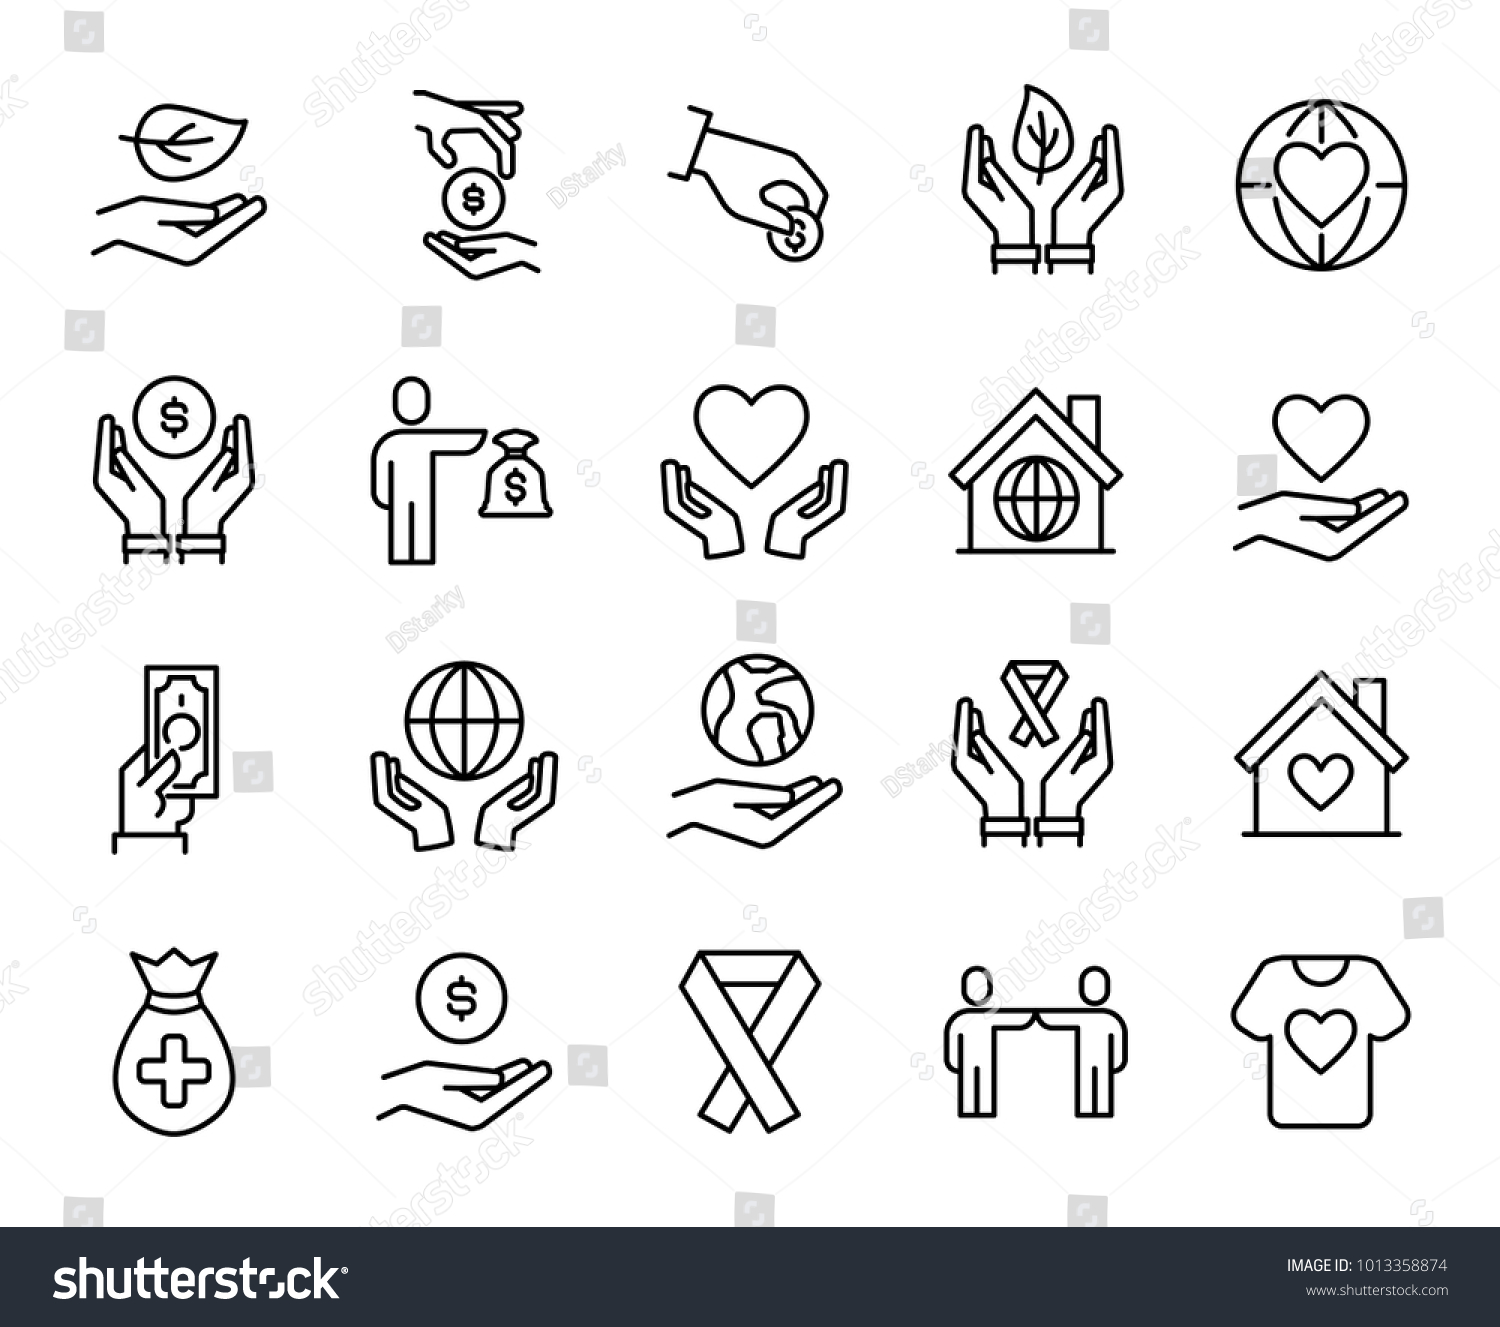 Symbol for volunteering images symbol and sign ideas simple collection volunteering related line icons stock vector simple collection of volunteering related line icons thin buycottarizona